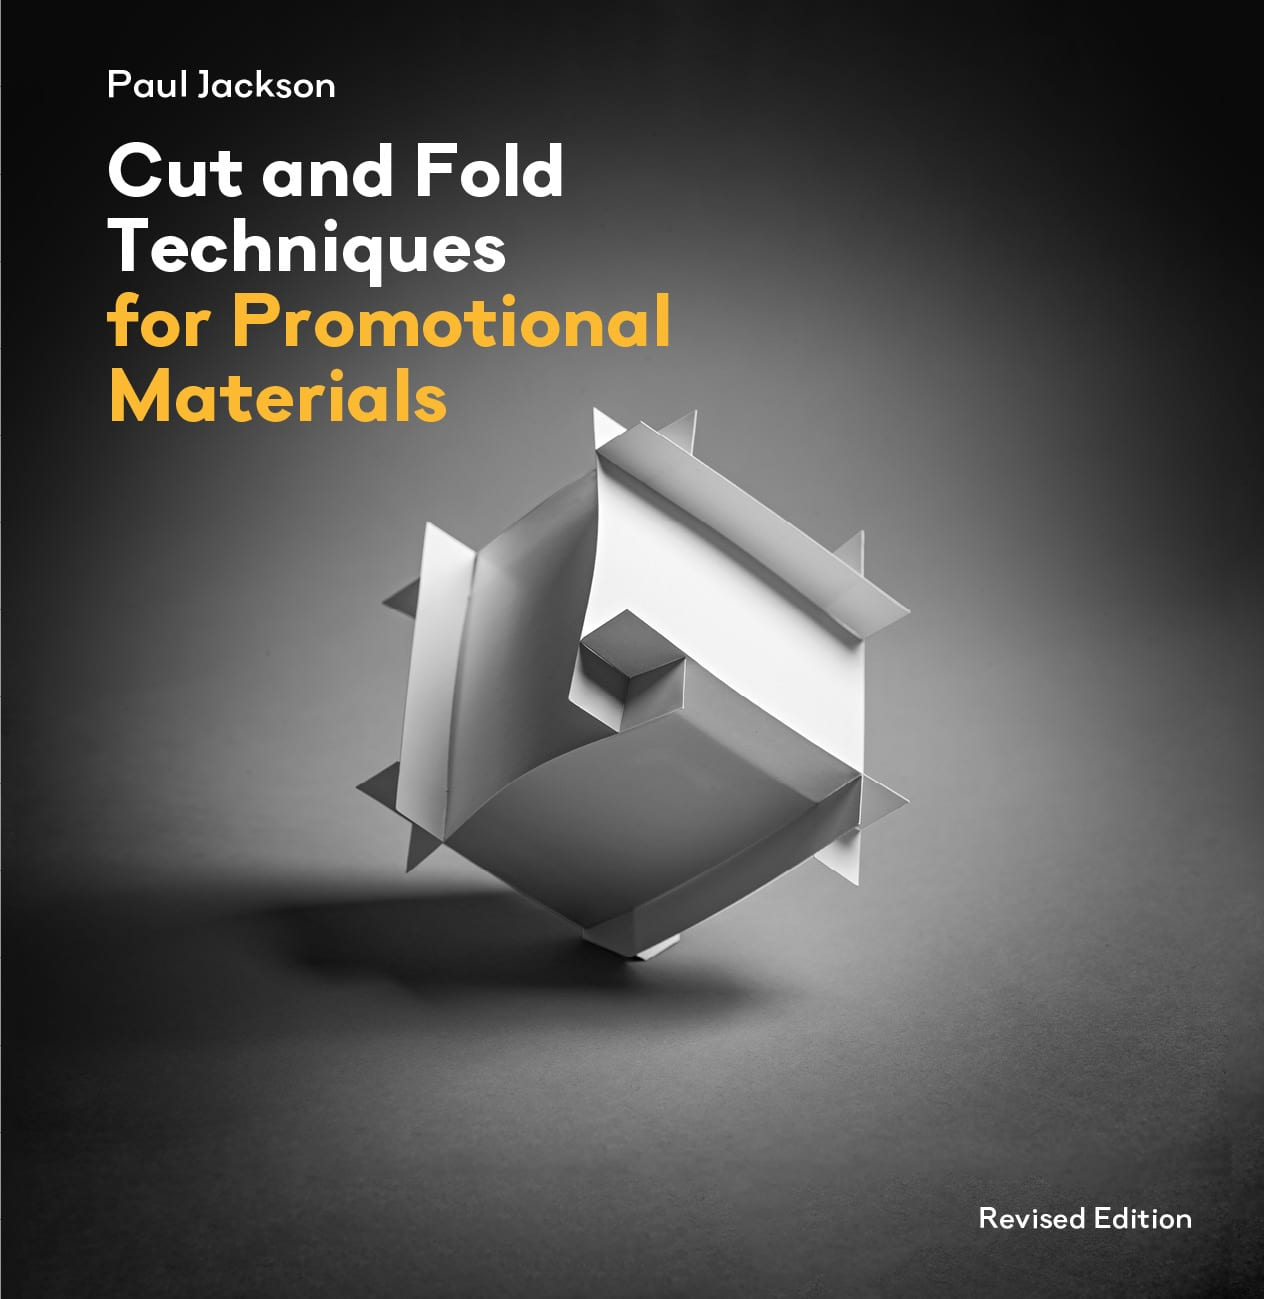 Cut and Fold Techniques for Promotional Materials, revised edition - Product Thumbnail